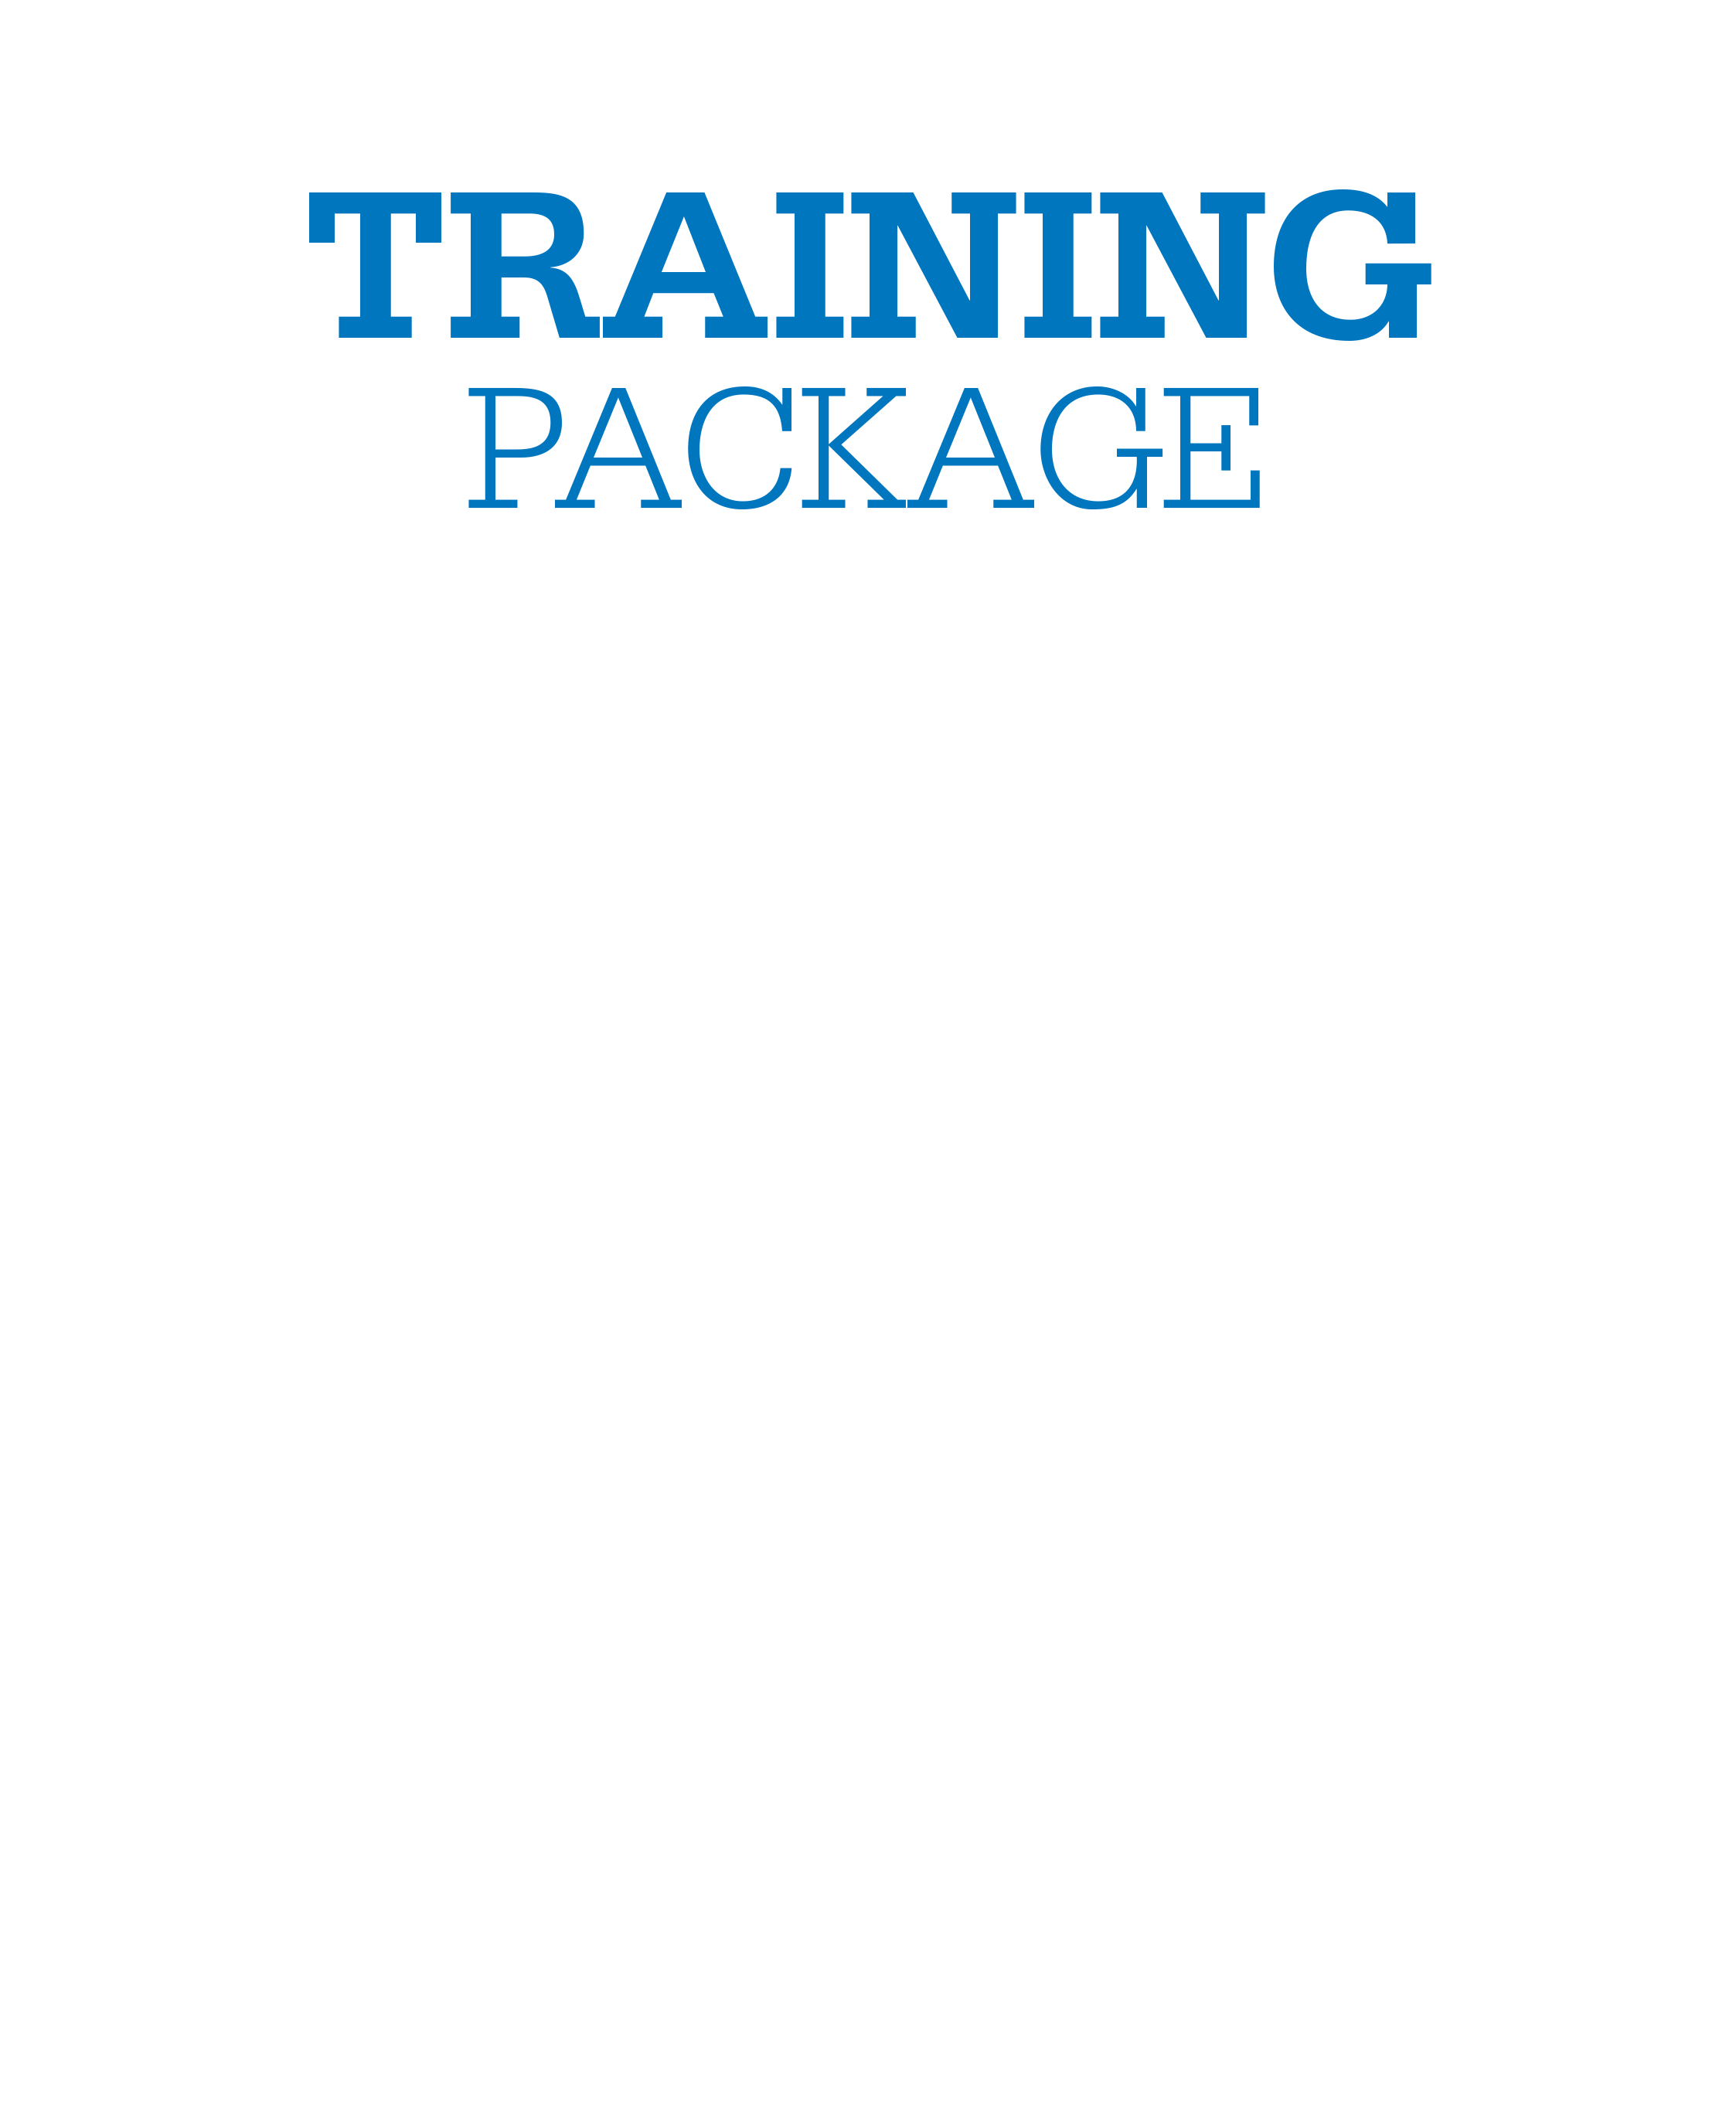 The Training Package at IMG Academy includes sport facilities use, accommodations, and on-campus dining.